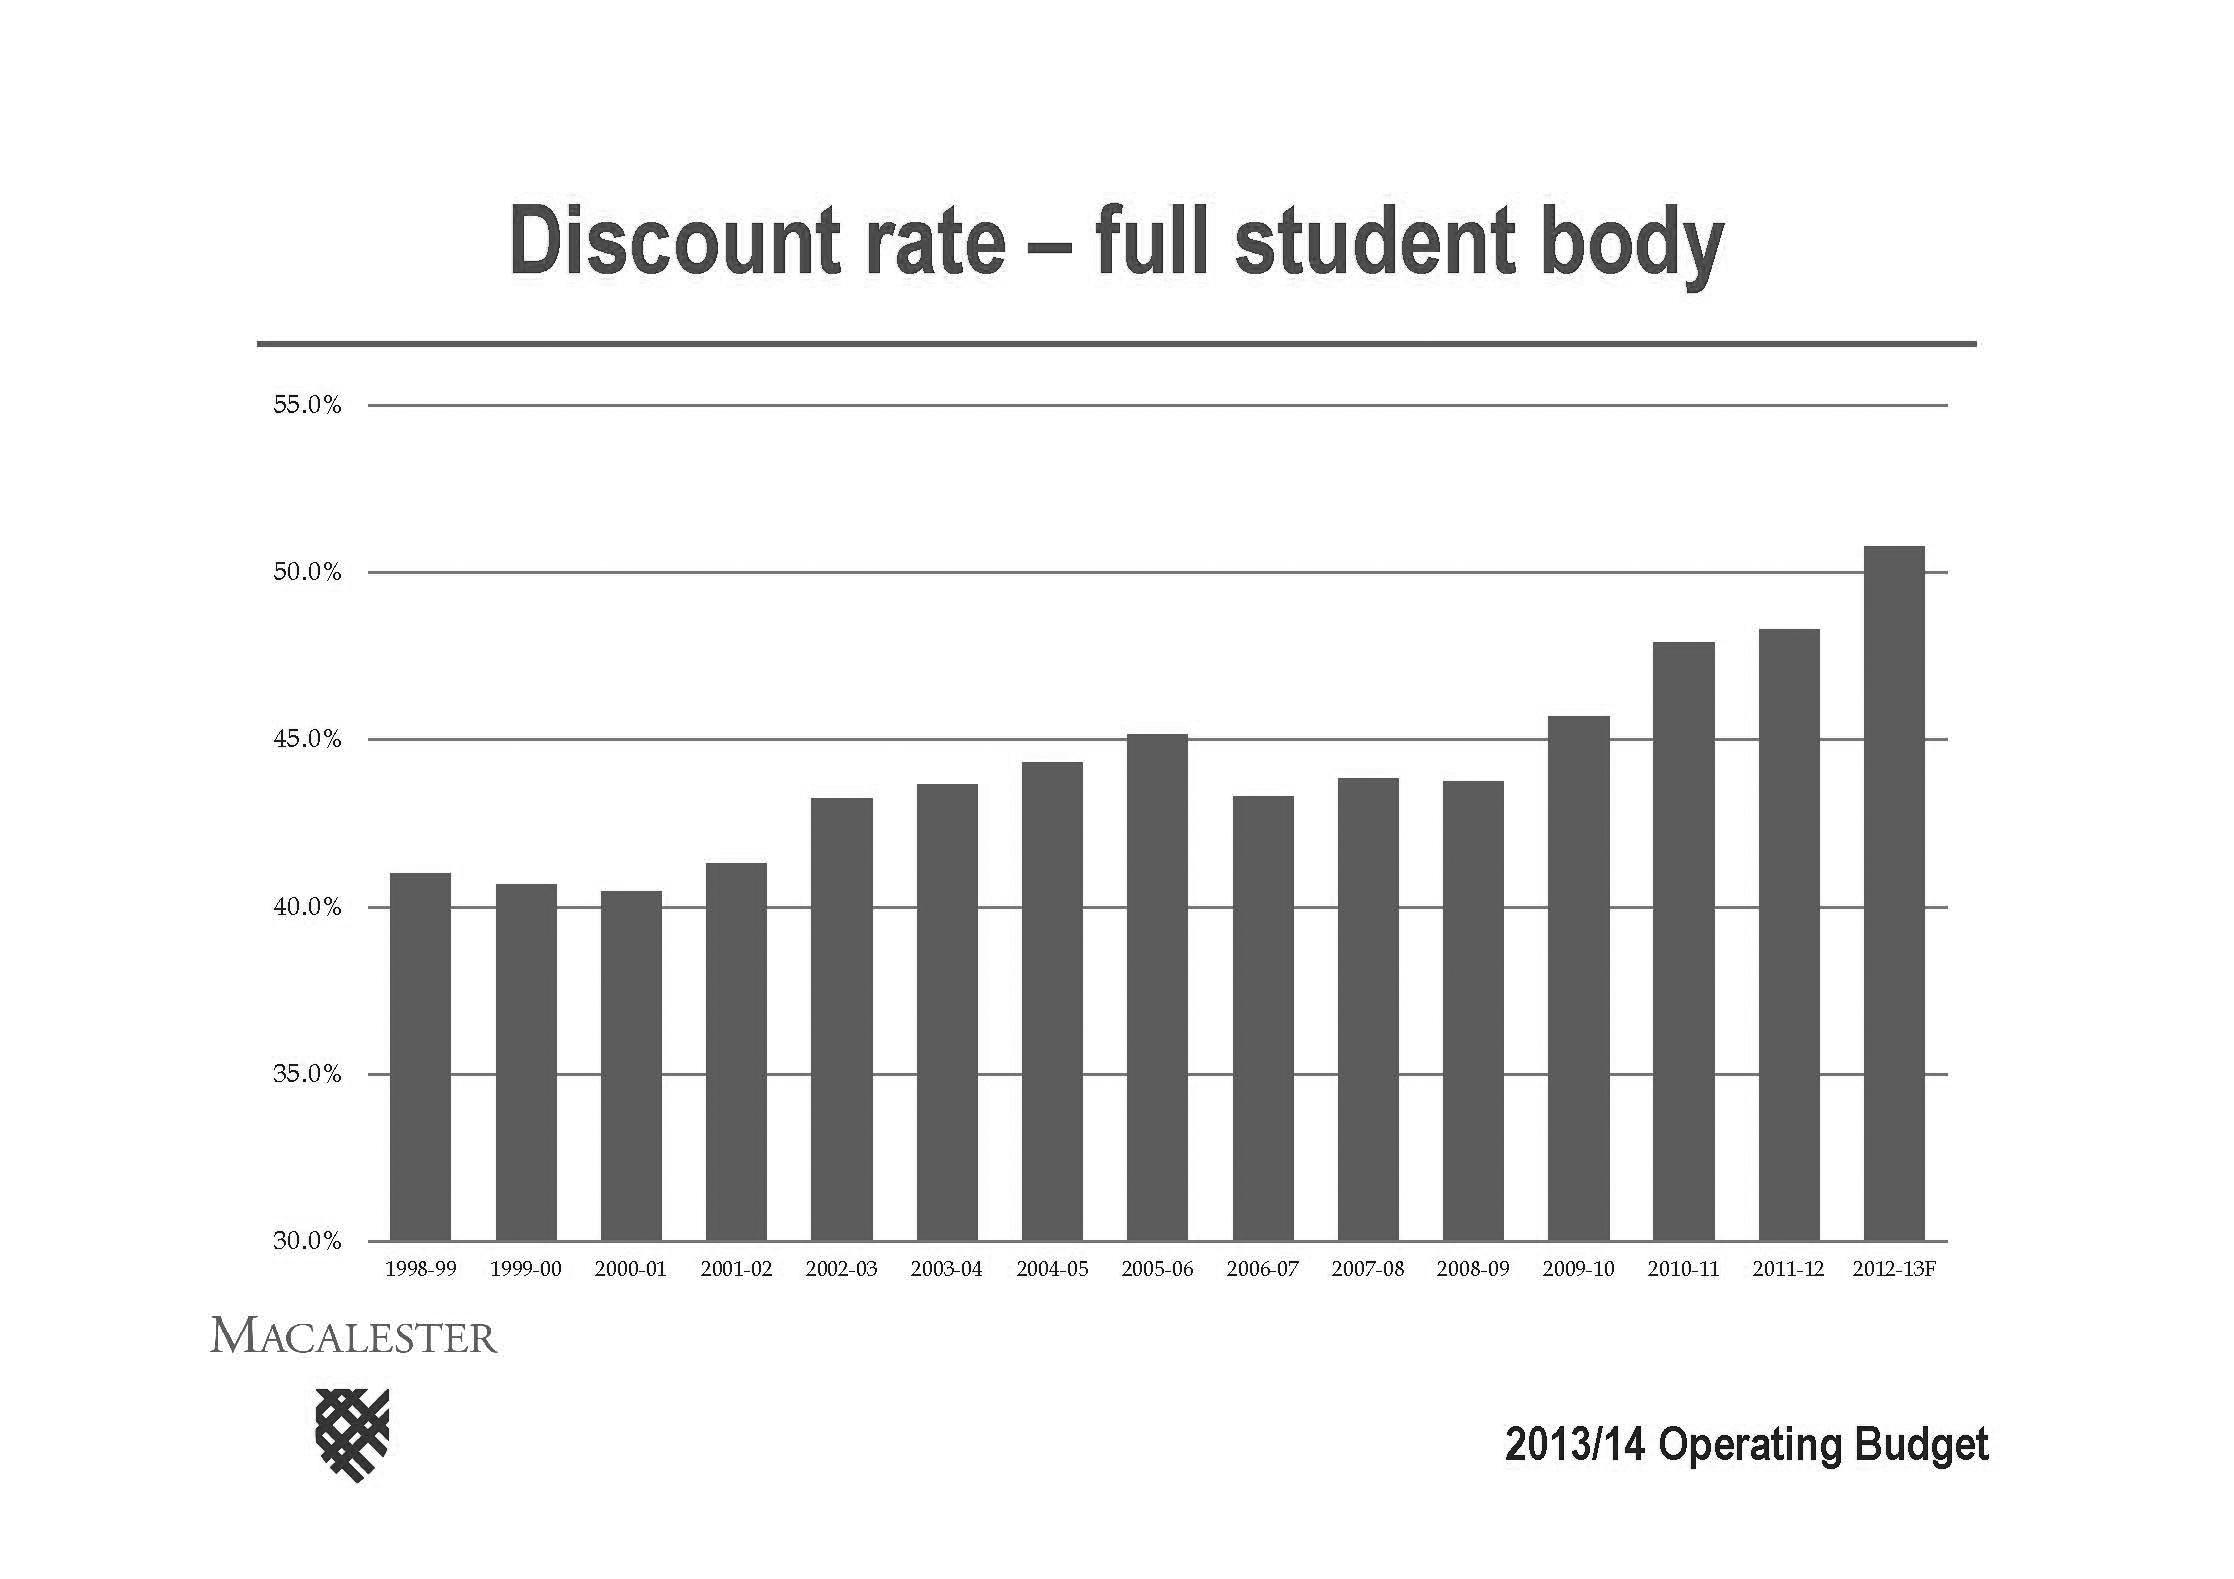 The graph shows the discount rate for the Macalester student body each school year.  The graph appeared in David Wheaton's budget presentation.